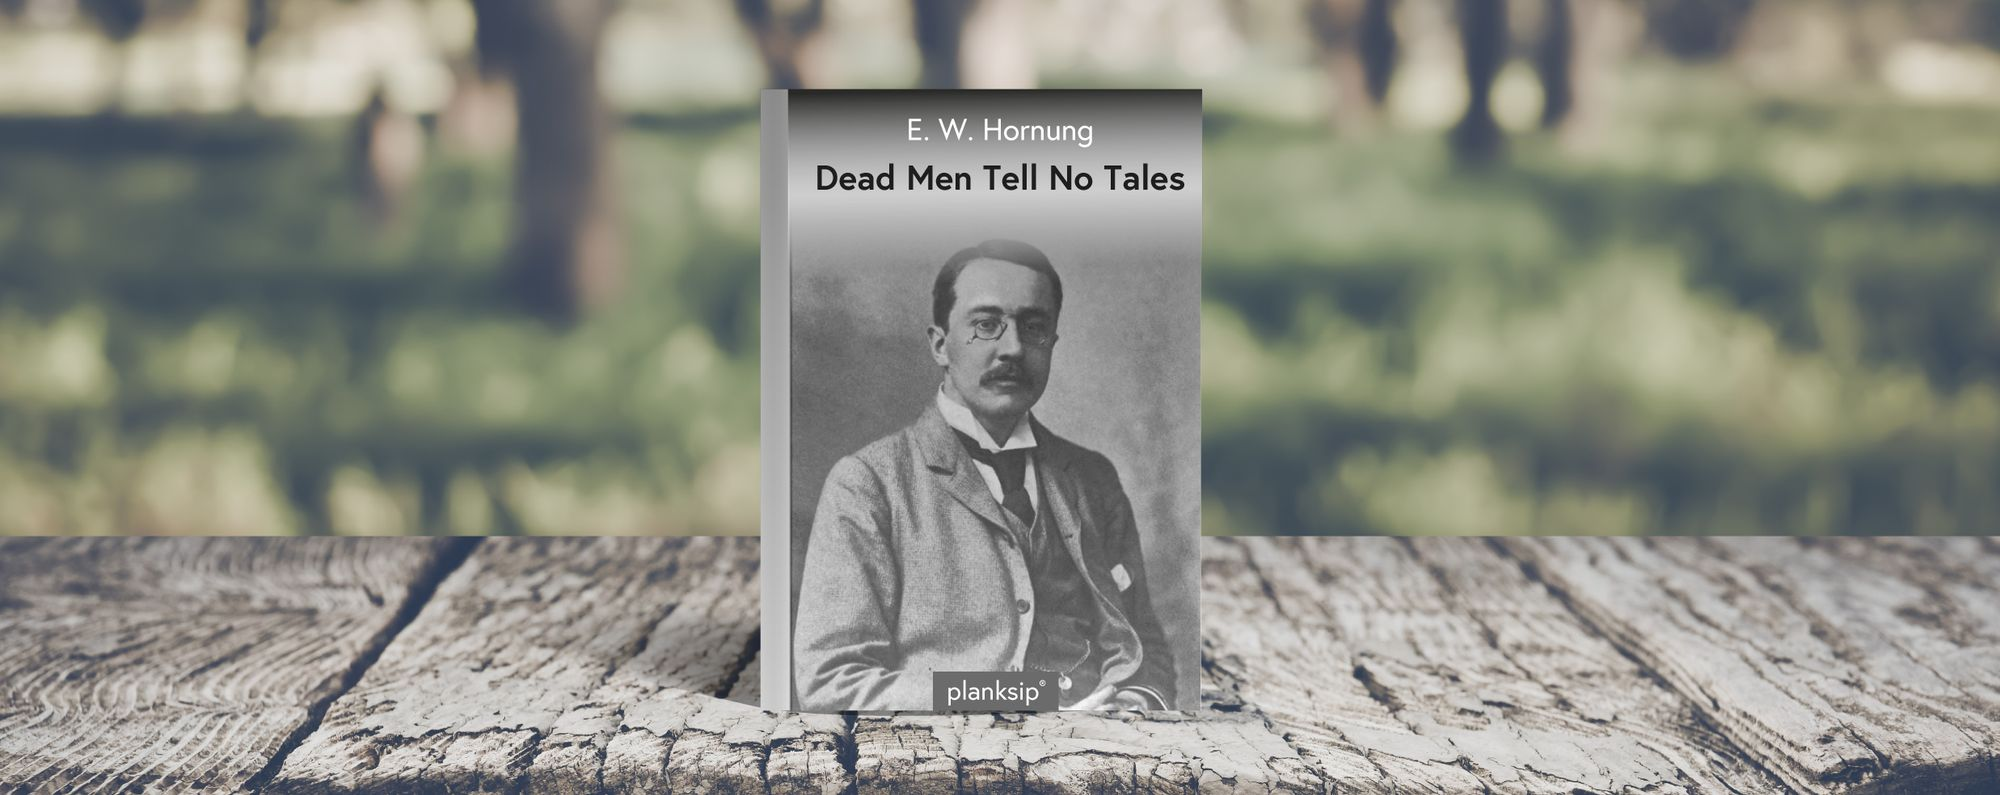 Dead Men Tell No Tales by E.W. Hornung (1866-1921). Published by planksip